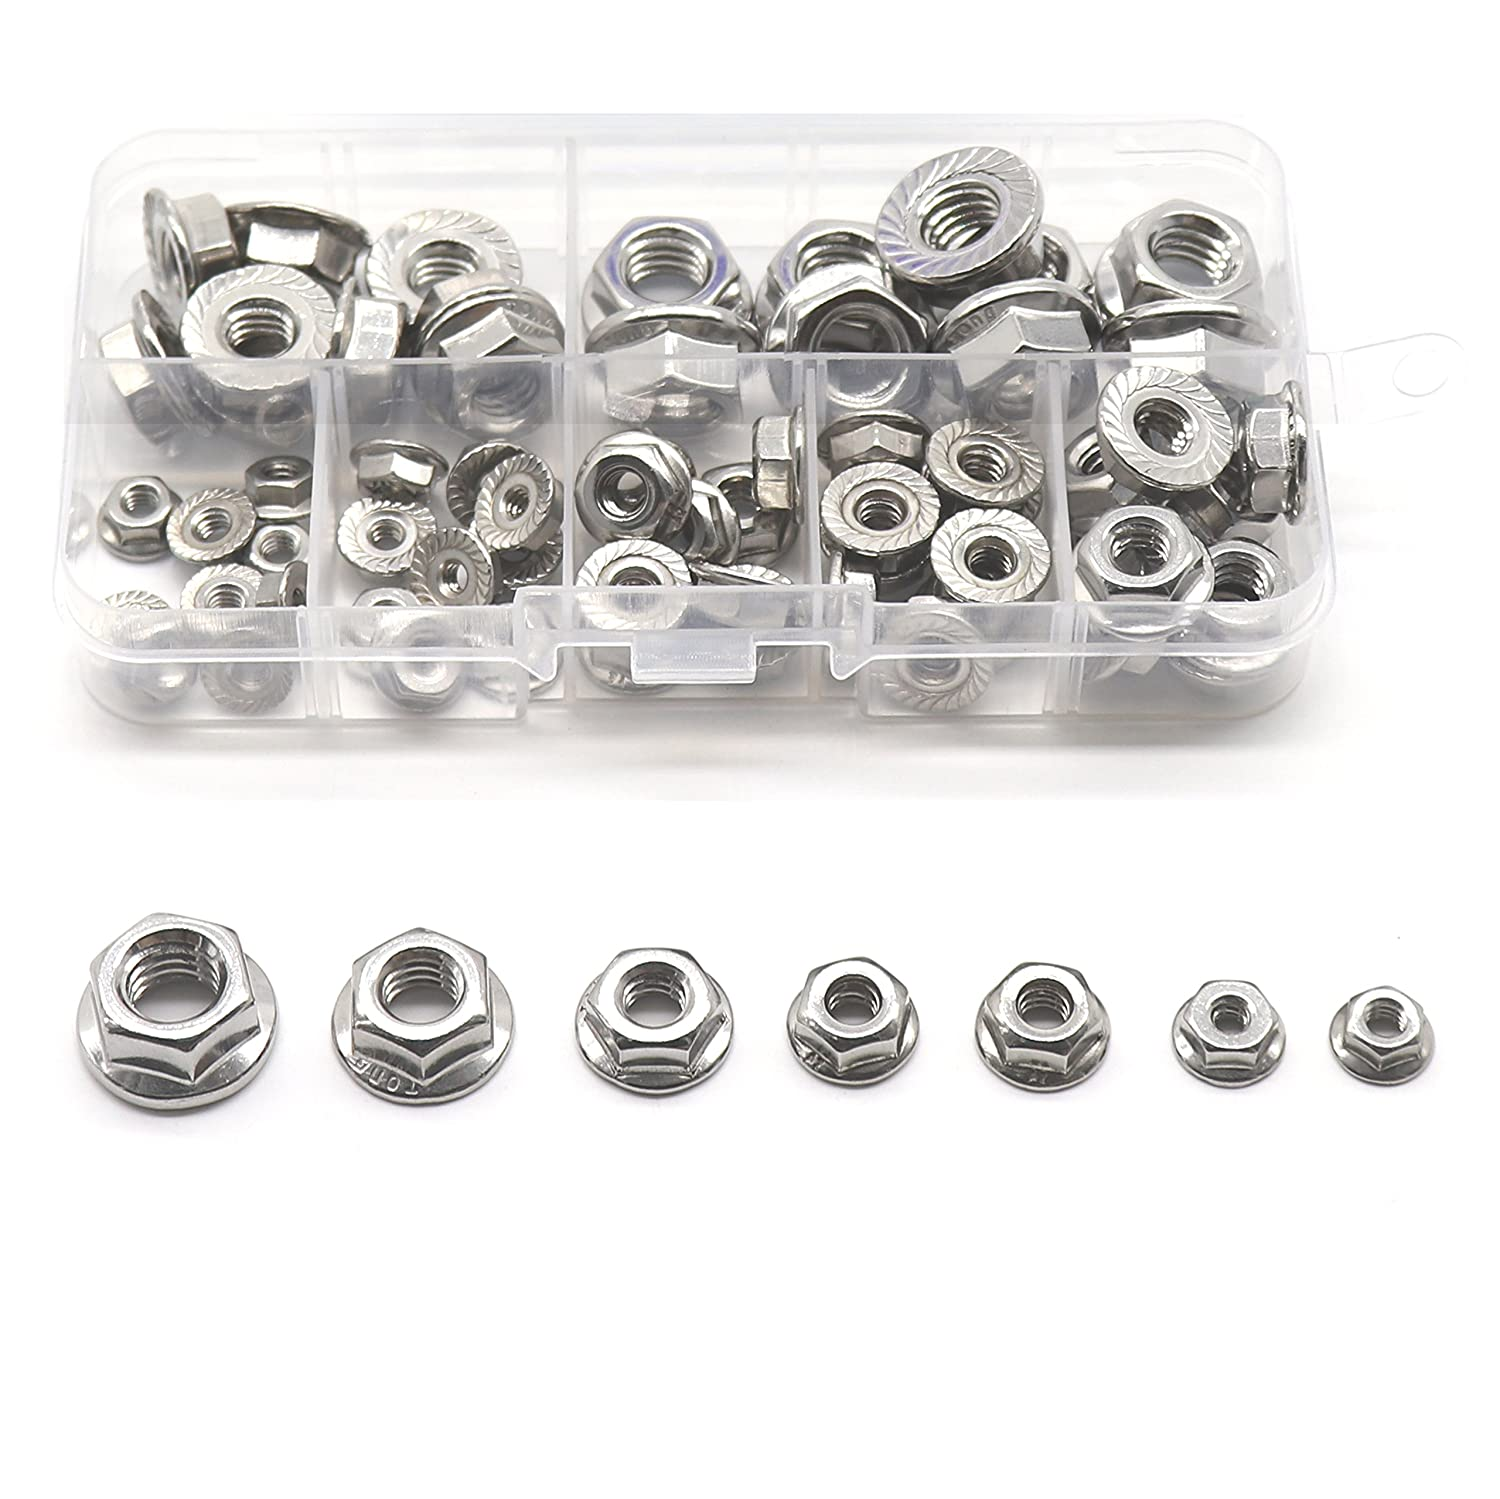 binifiMux 70Pcs Hexagon Flange Nuts Assortment Kit 7 Sizes 304 Stainless Steel #6#8#10 3 16 1 4 5 16 3 8